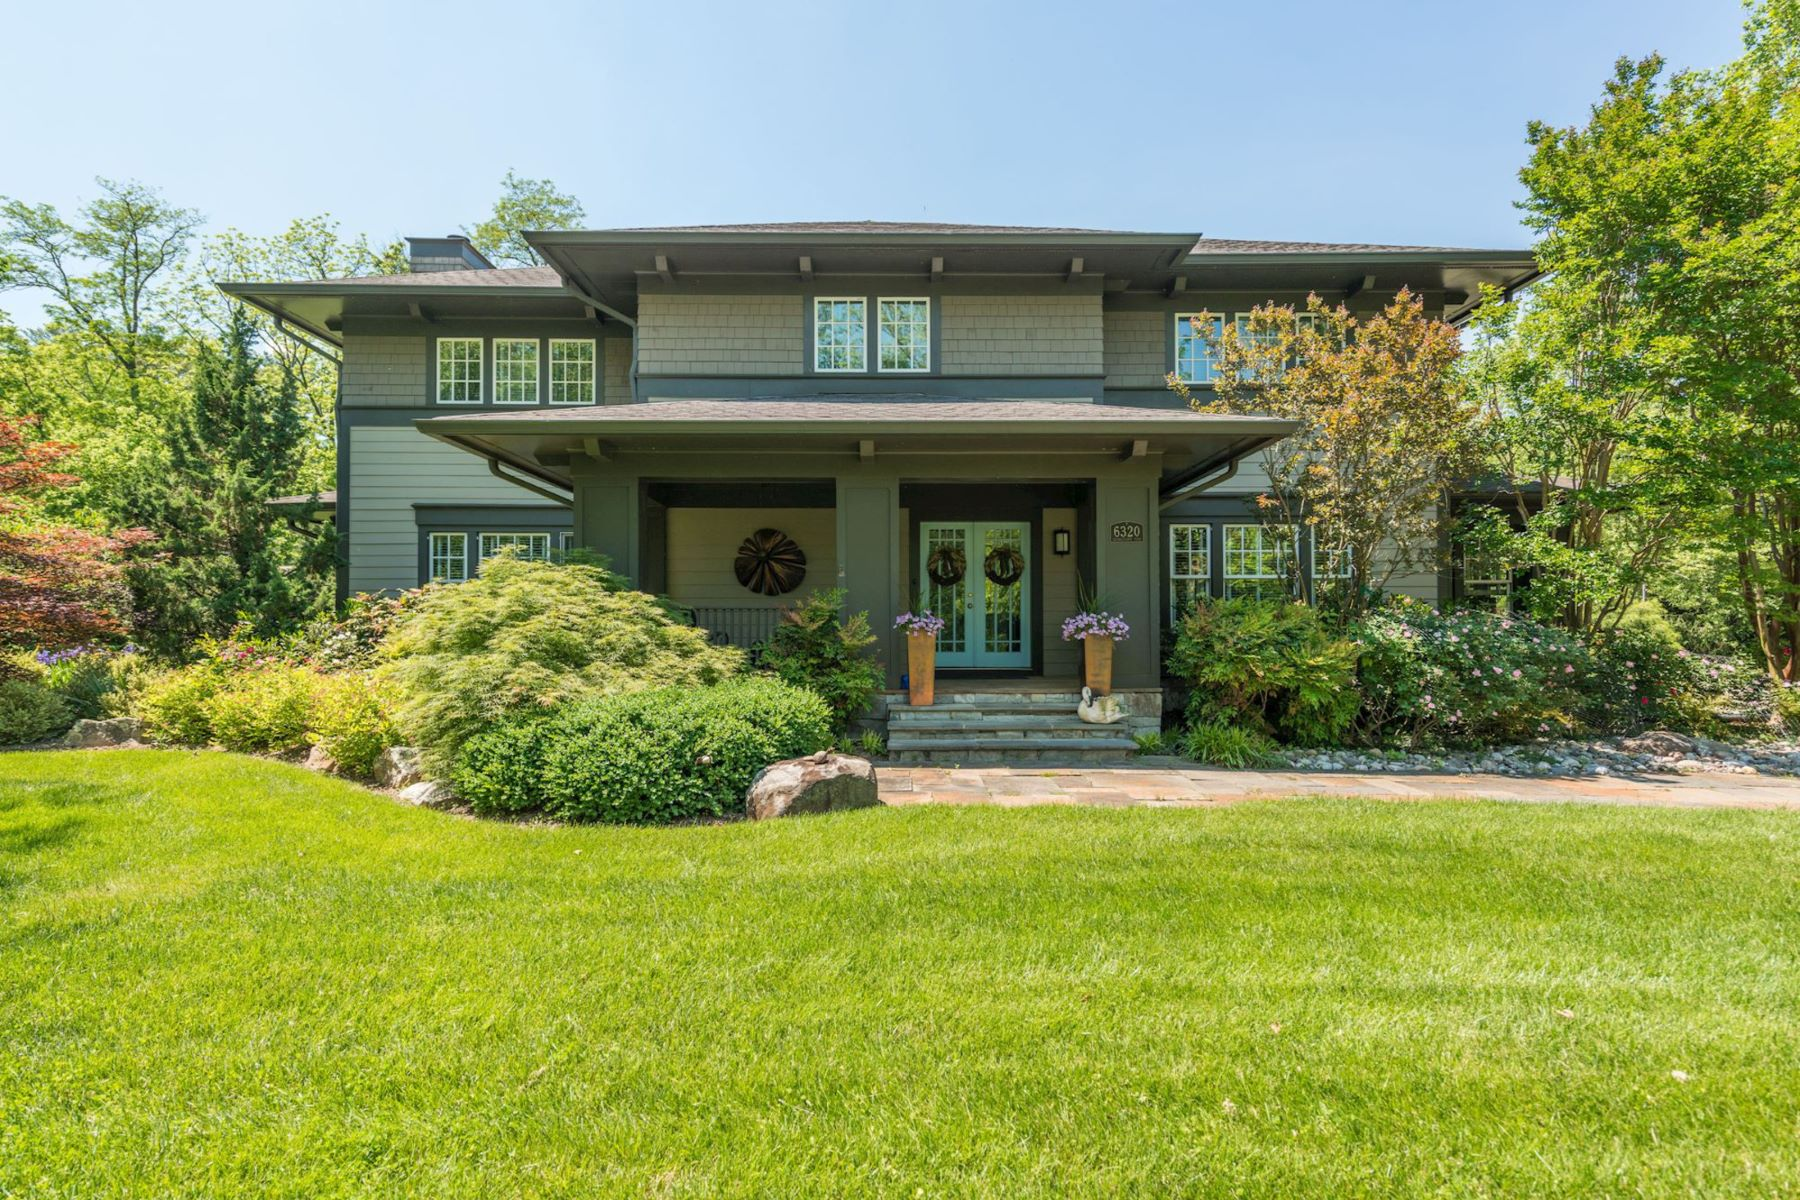 Single Family Home for Sale at 6320 Georgetown Pike 6320 Georgetown Pike McLean, Virginia 22101 United States